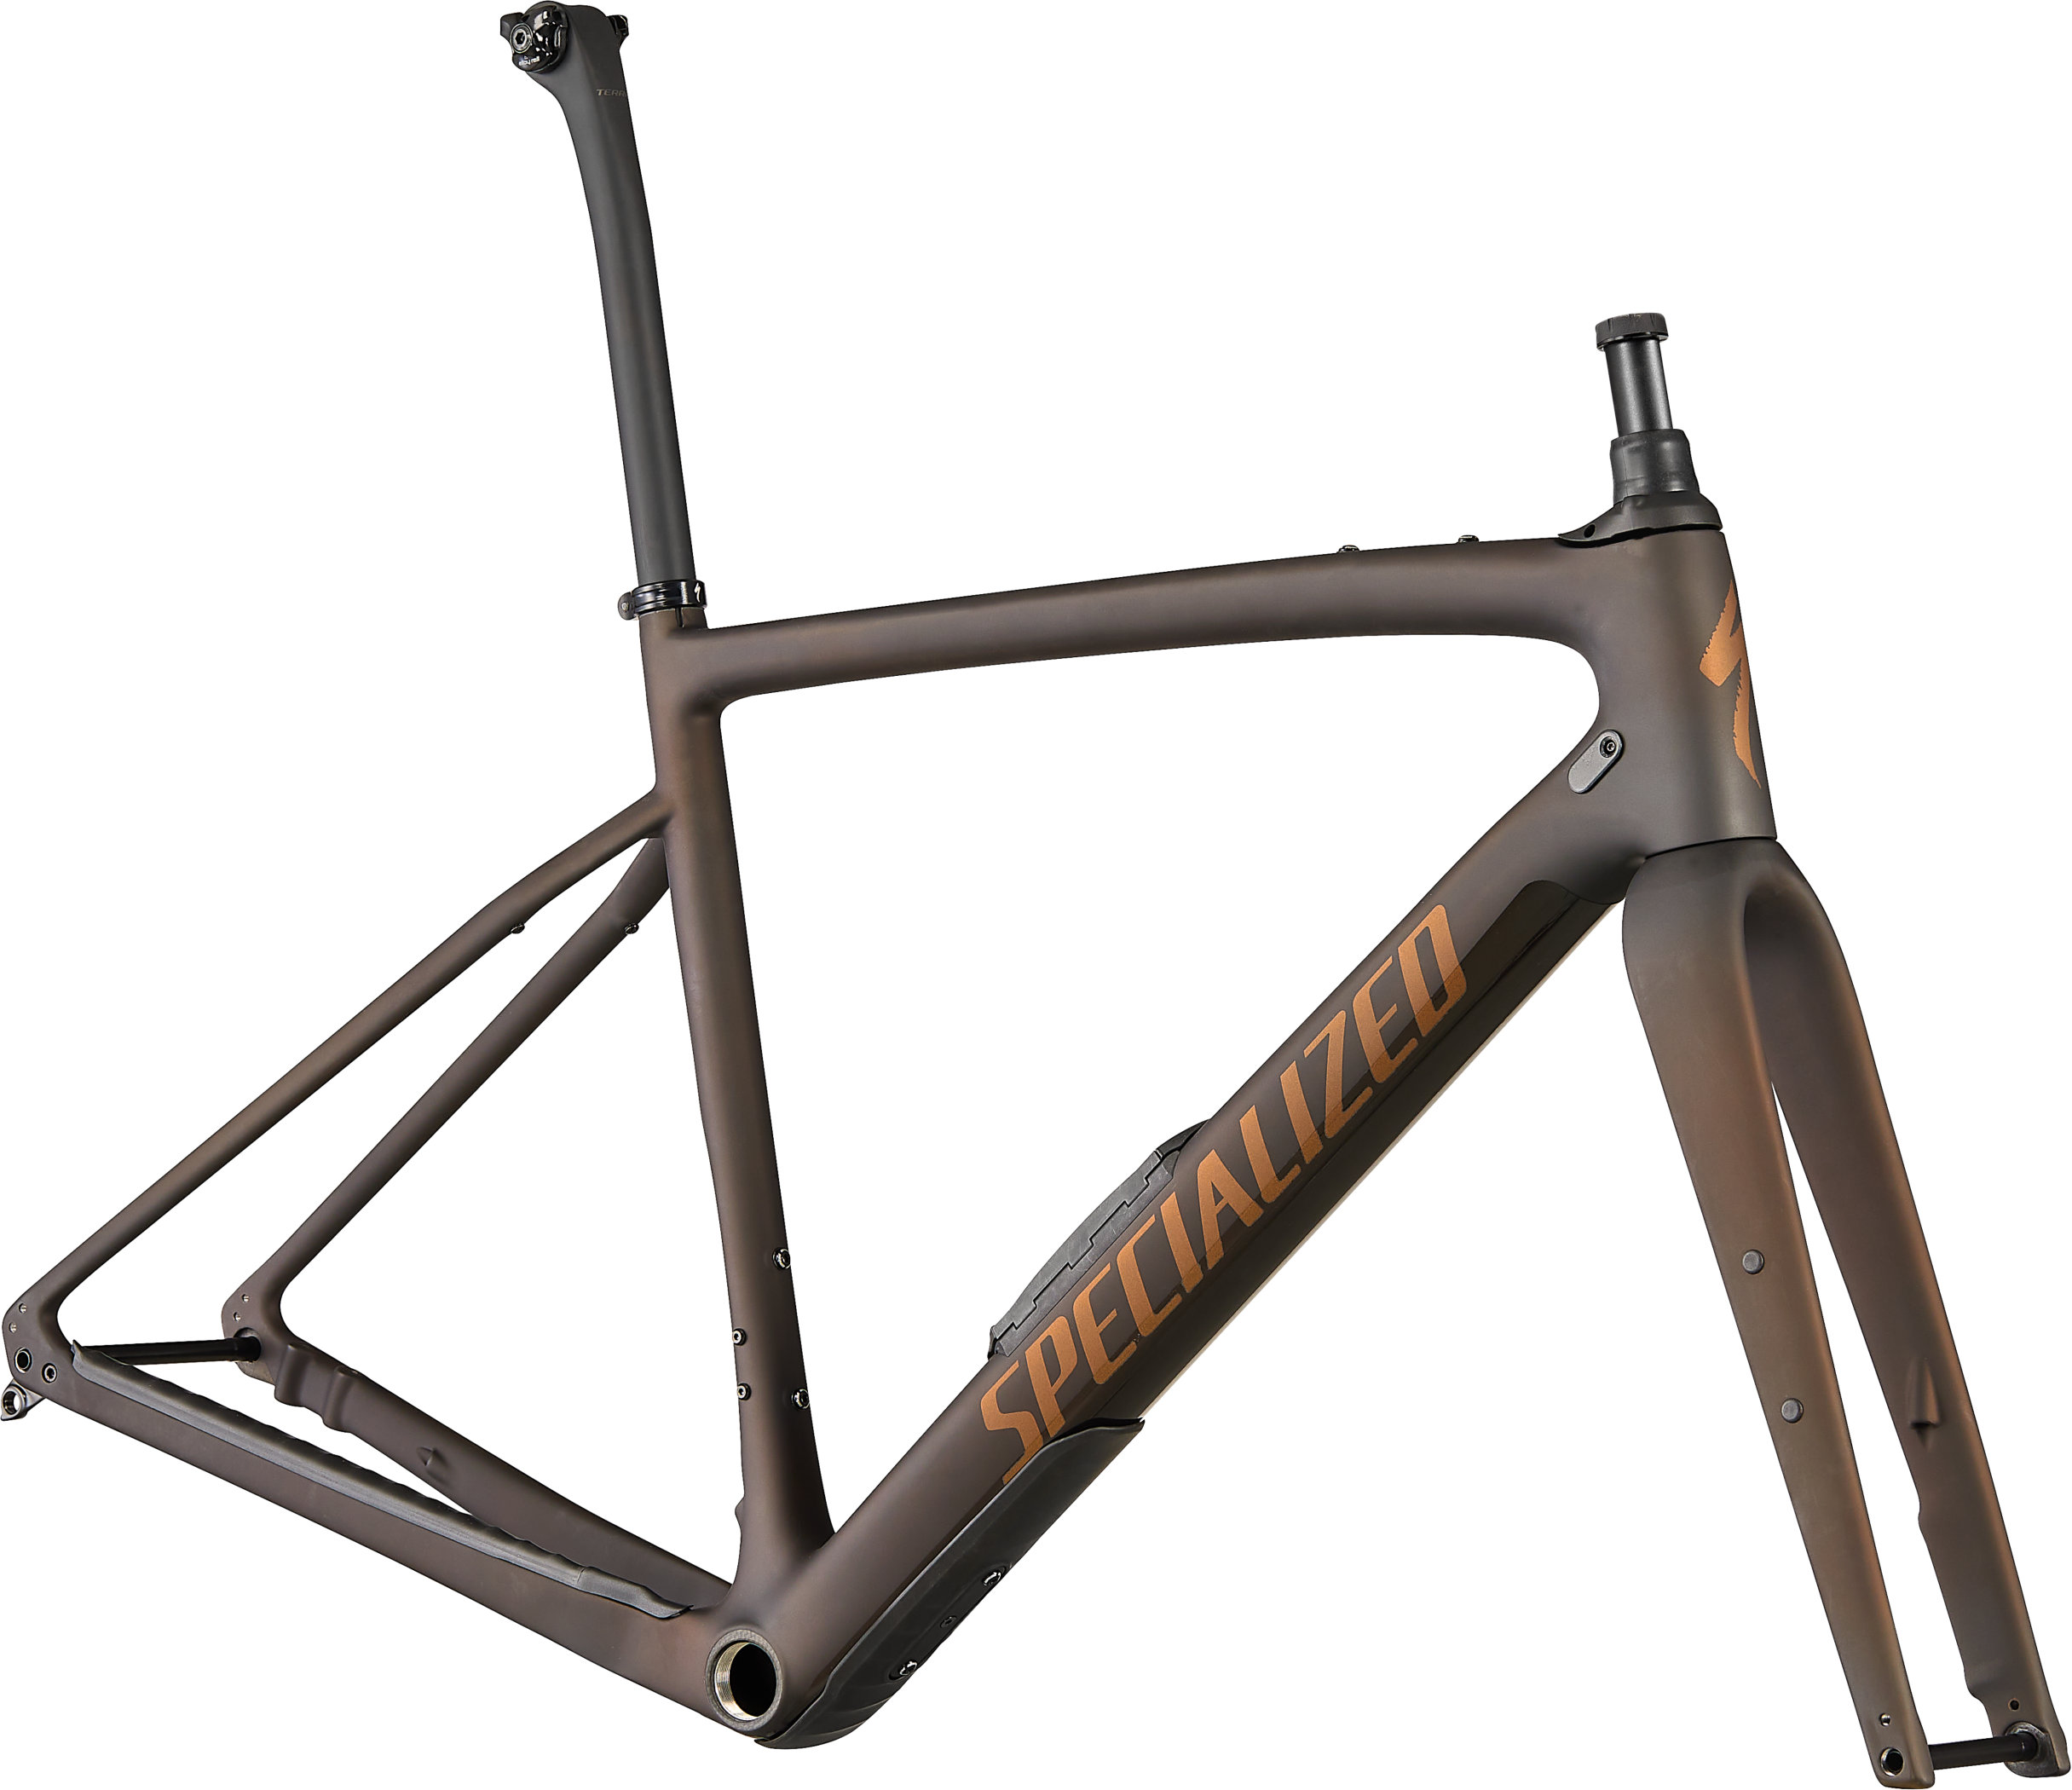 Cuadro Specialized Diverge FACT 9r